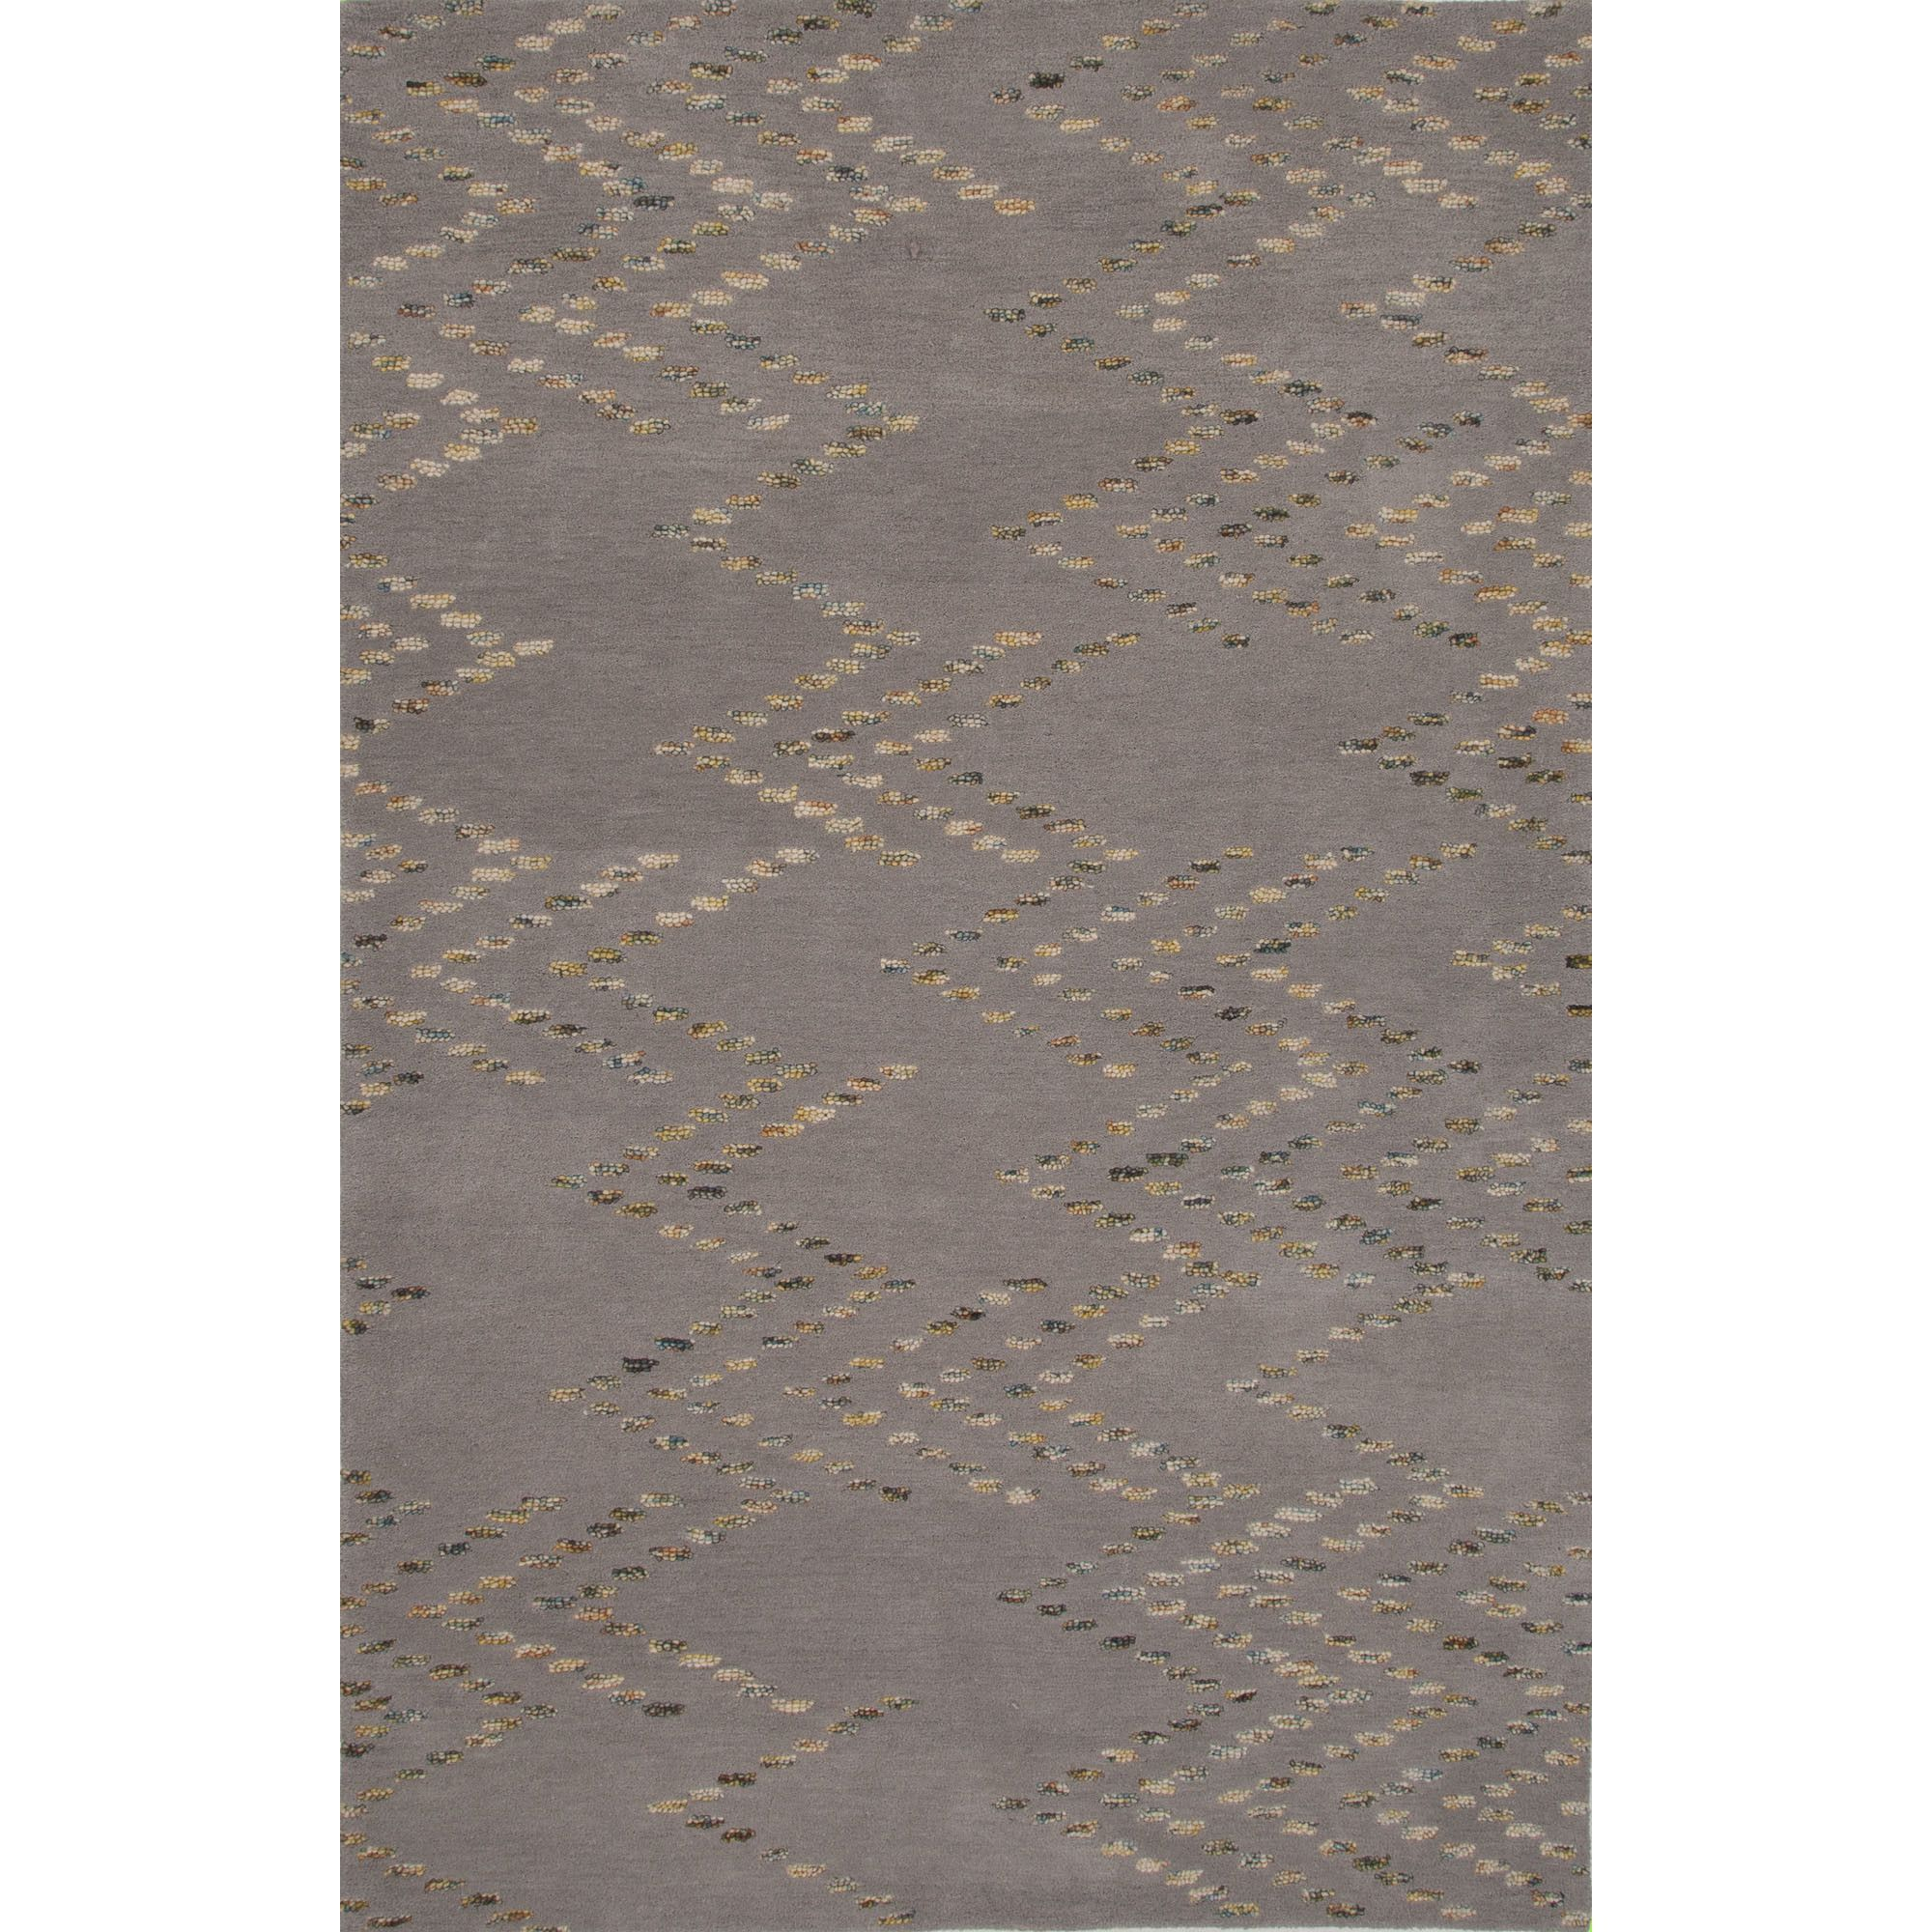 Traditions Made Modern Wool Hand Tufted Gray Area Rug